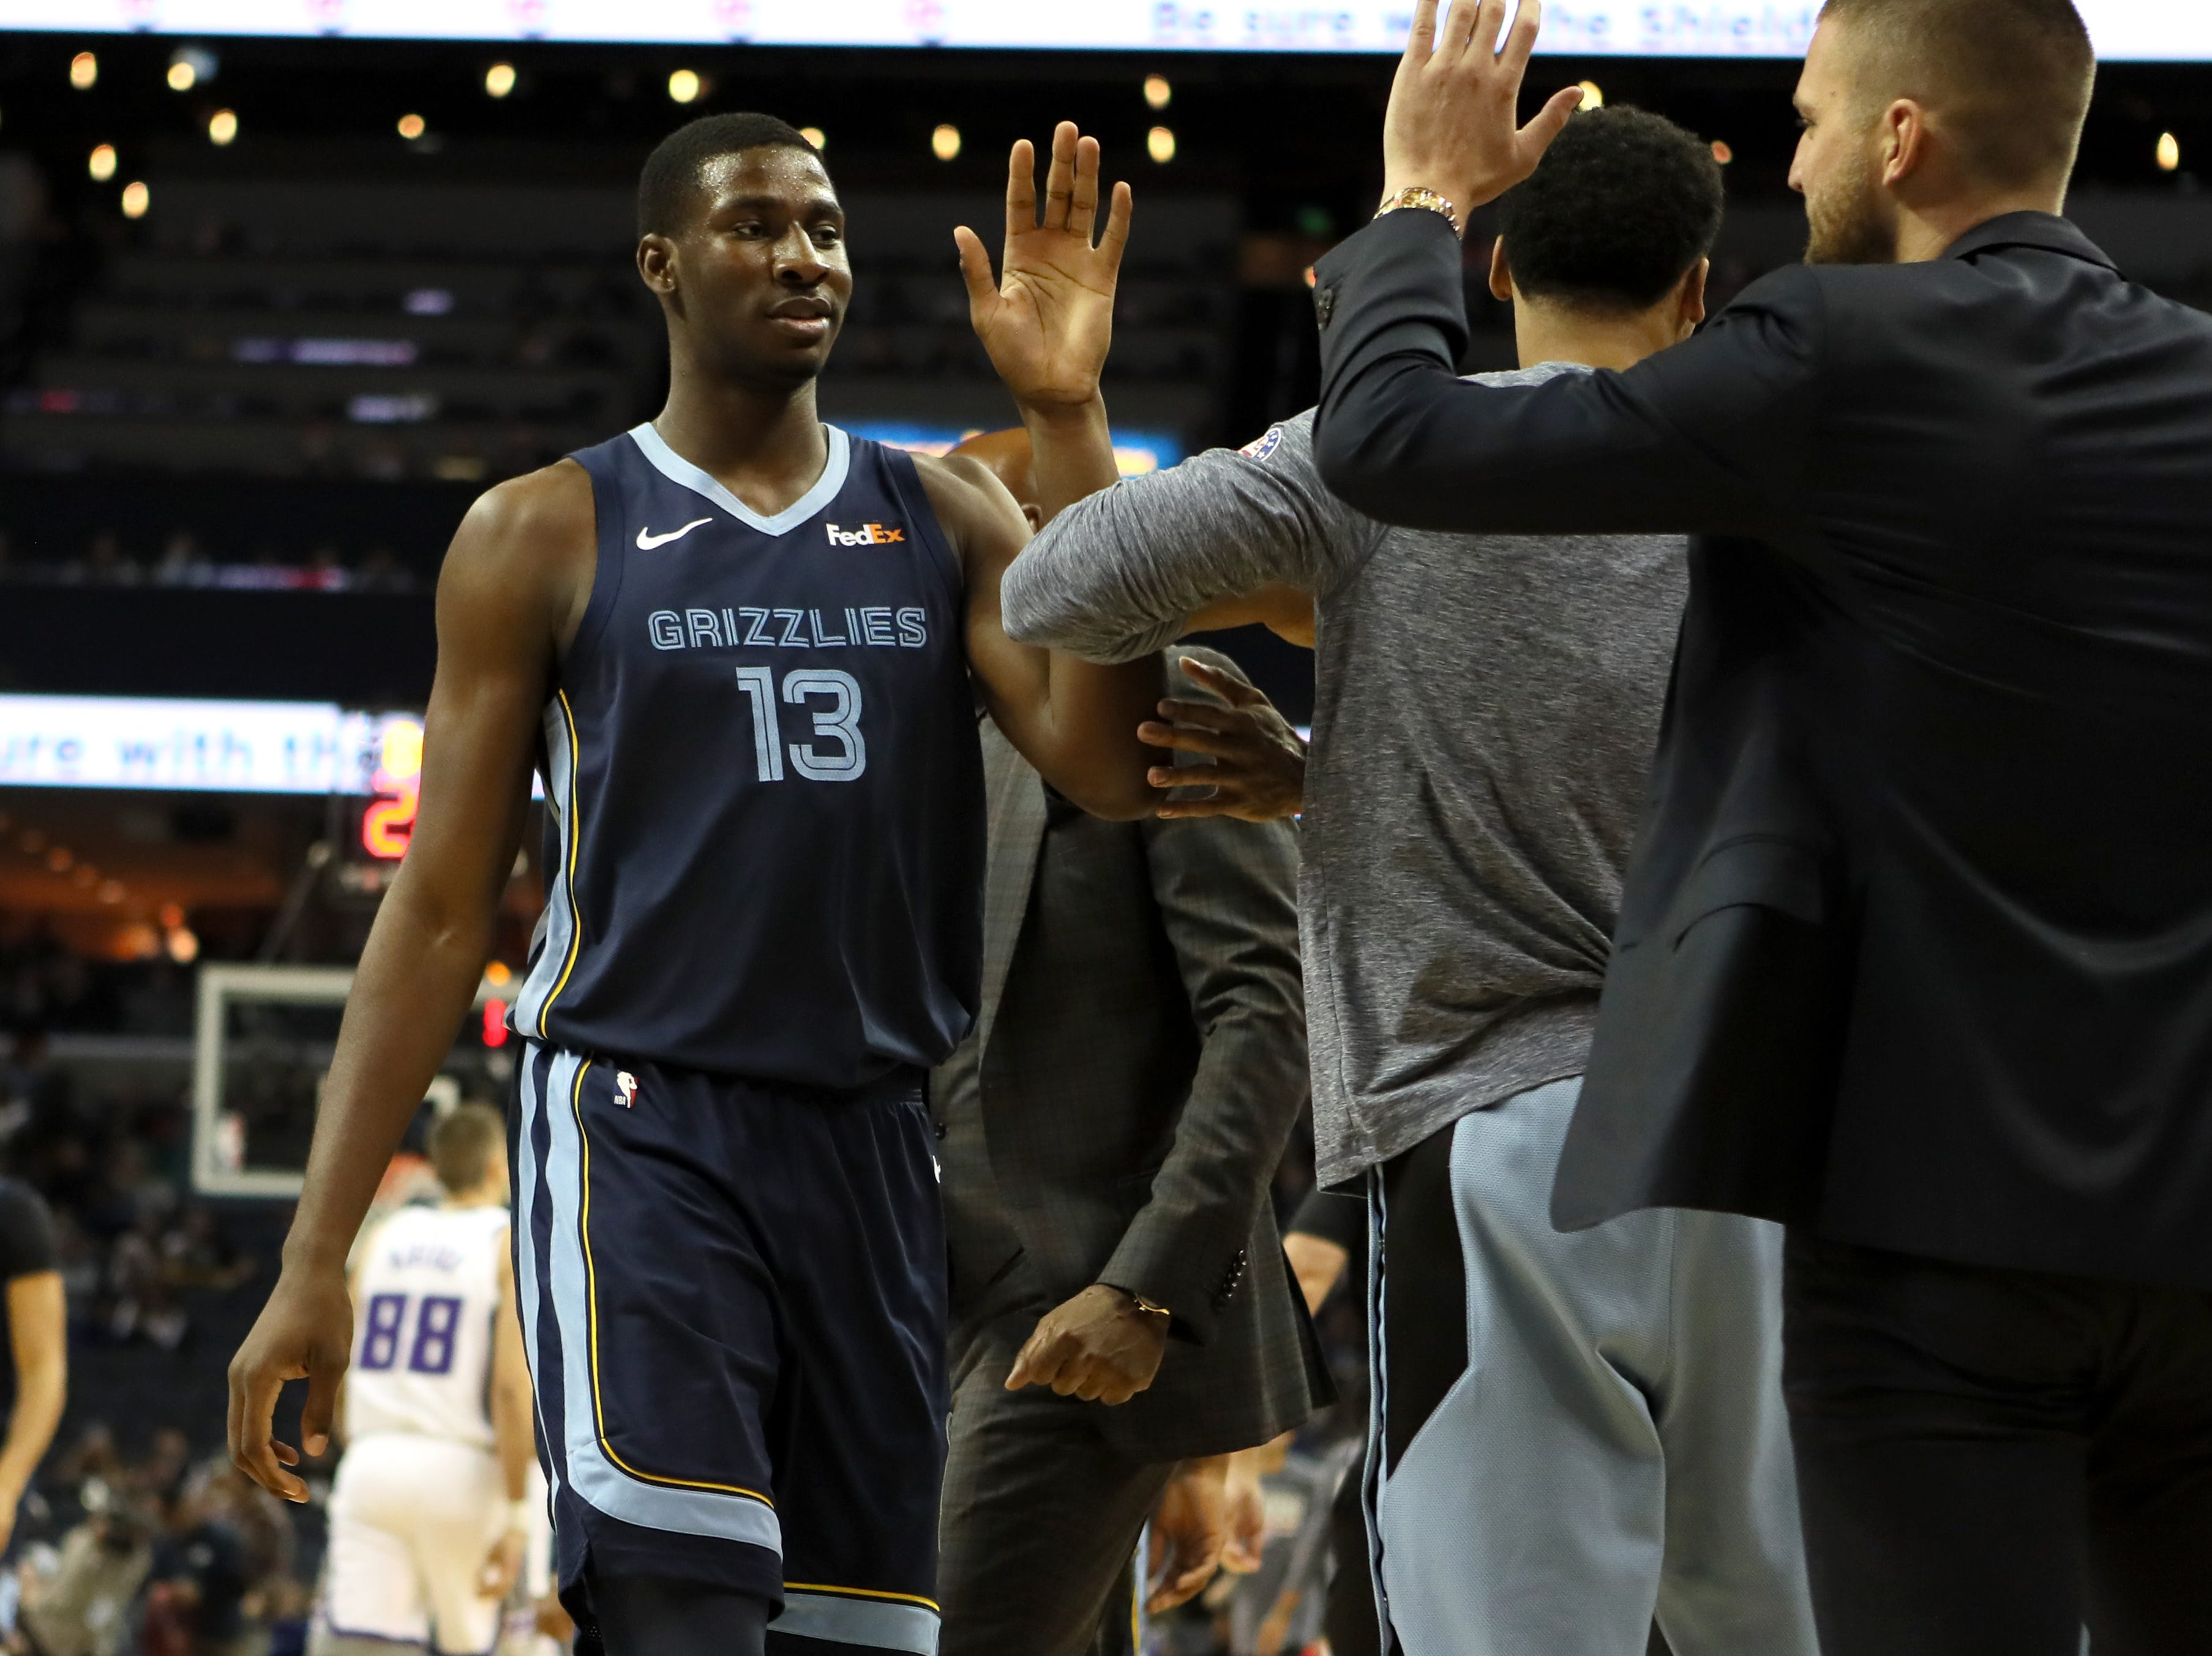 Memphis Grizzlies forward Jaren Jackson Jr. high-fives teammates during a timeout in ther game against the Sacramento Kings at the FedExForum on Friday, Nov. 16, 2018.